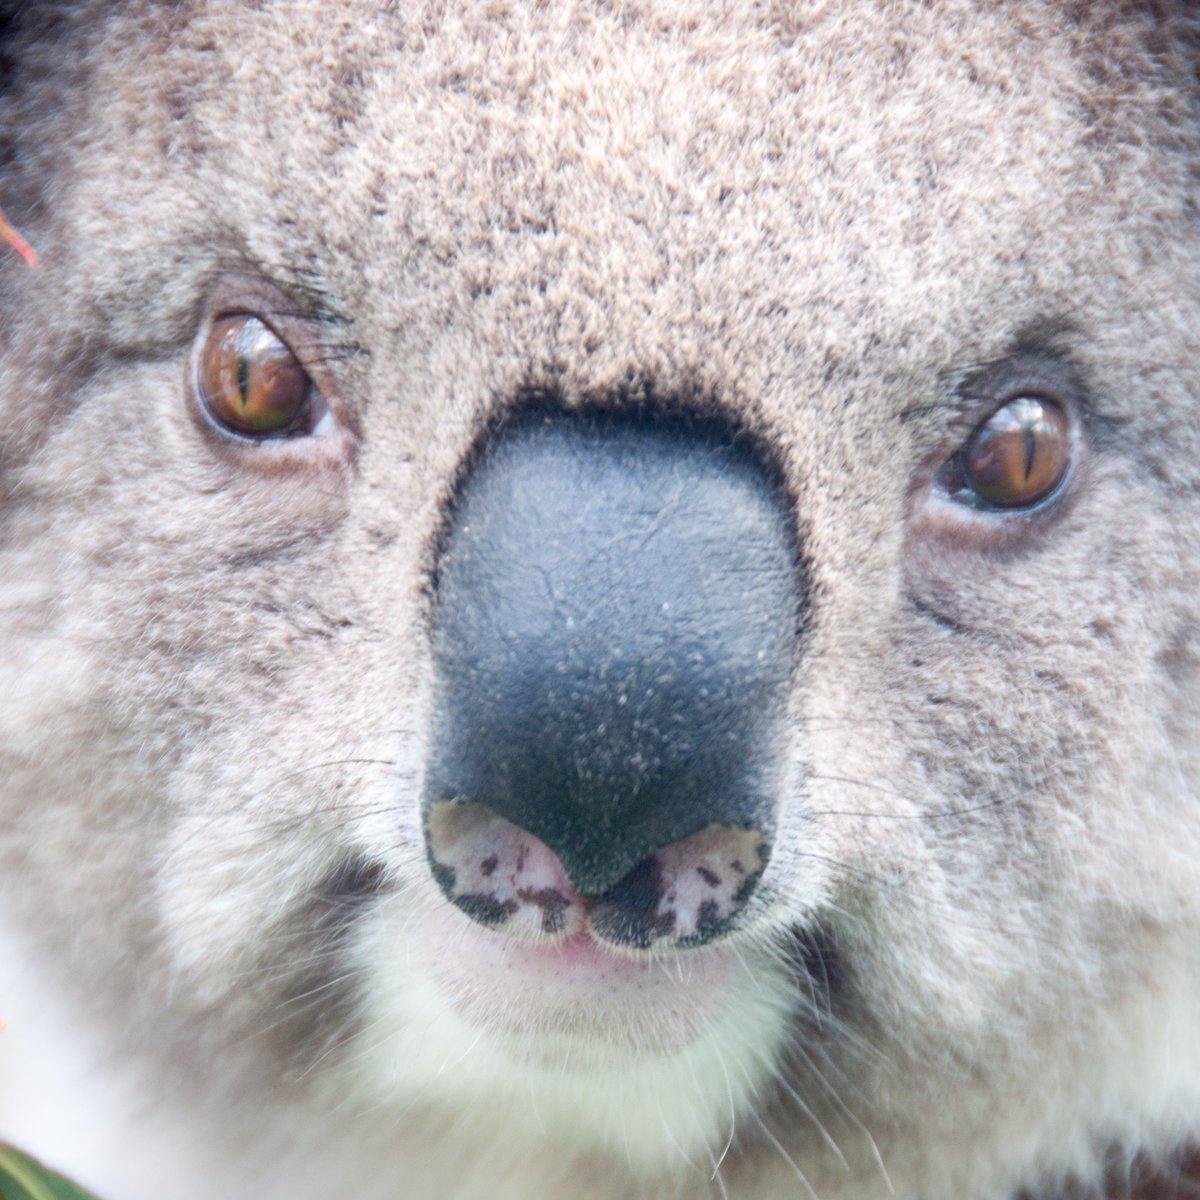 We're looking for a postdoc to work on koala physiological ecology and distribution modelling. You'd be working with a great team of people, on an exciting project. Interested? Please get in touch and spread the word https://t.co/AbgJ2sxAPI https://t.co/HUJQtTEccS